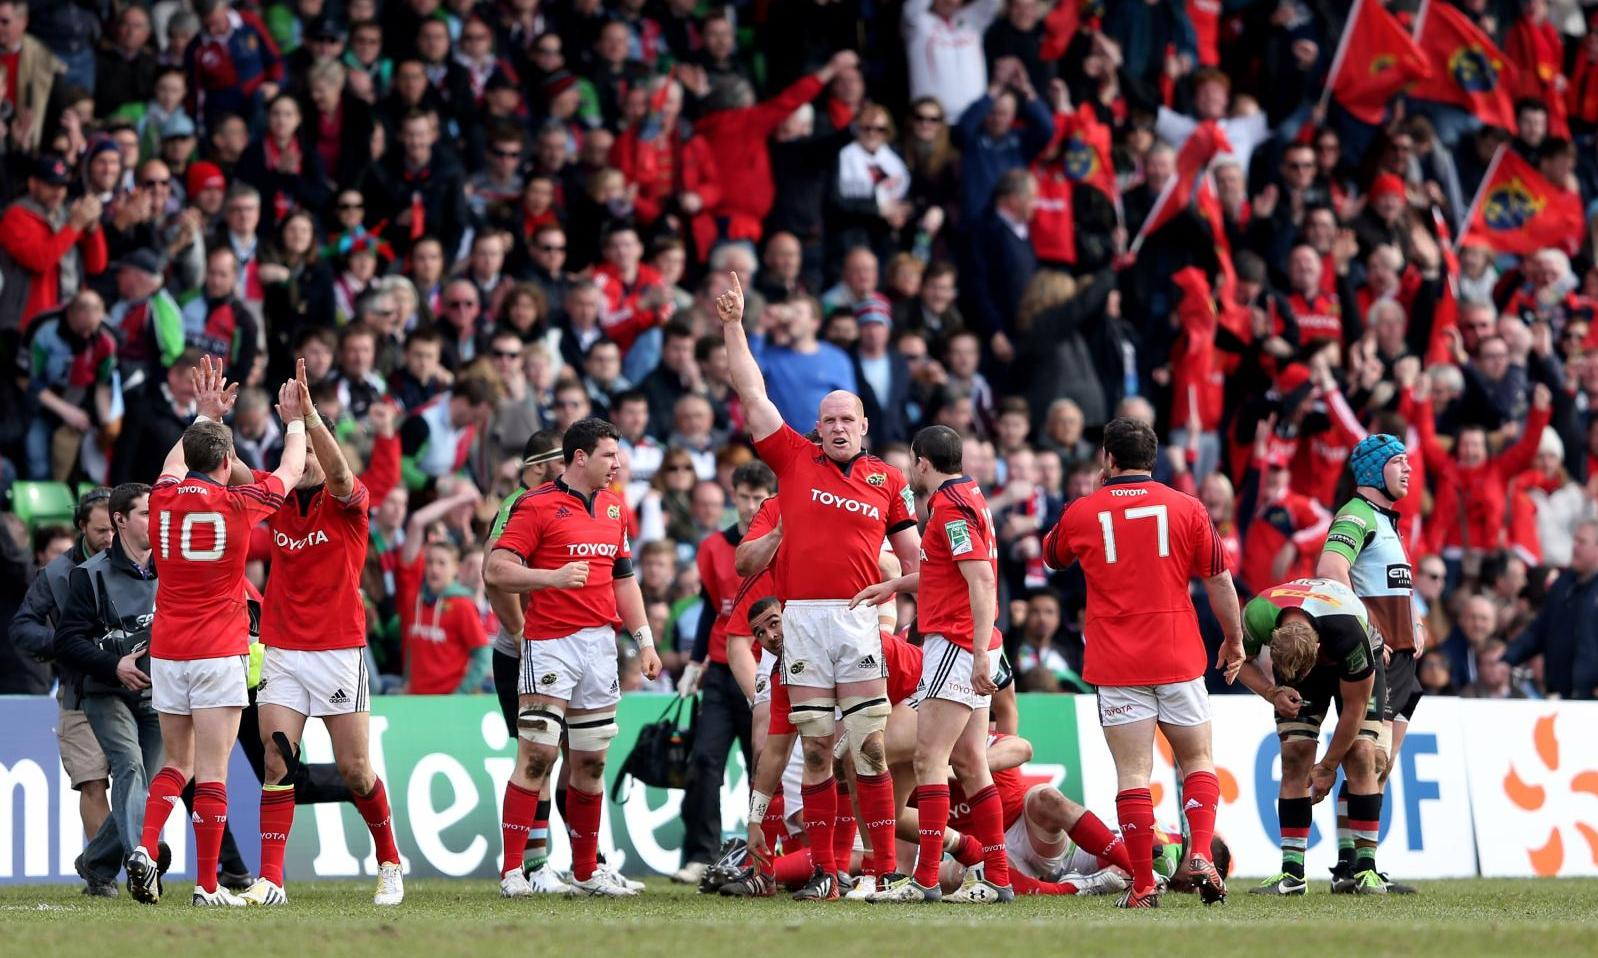 Munster Rugby captain Paul O'Connell celebrates following his teams victory over Harlequins in the 2013 Heineken Cup Quarter Final (courtesy of Getty Images)